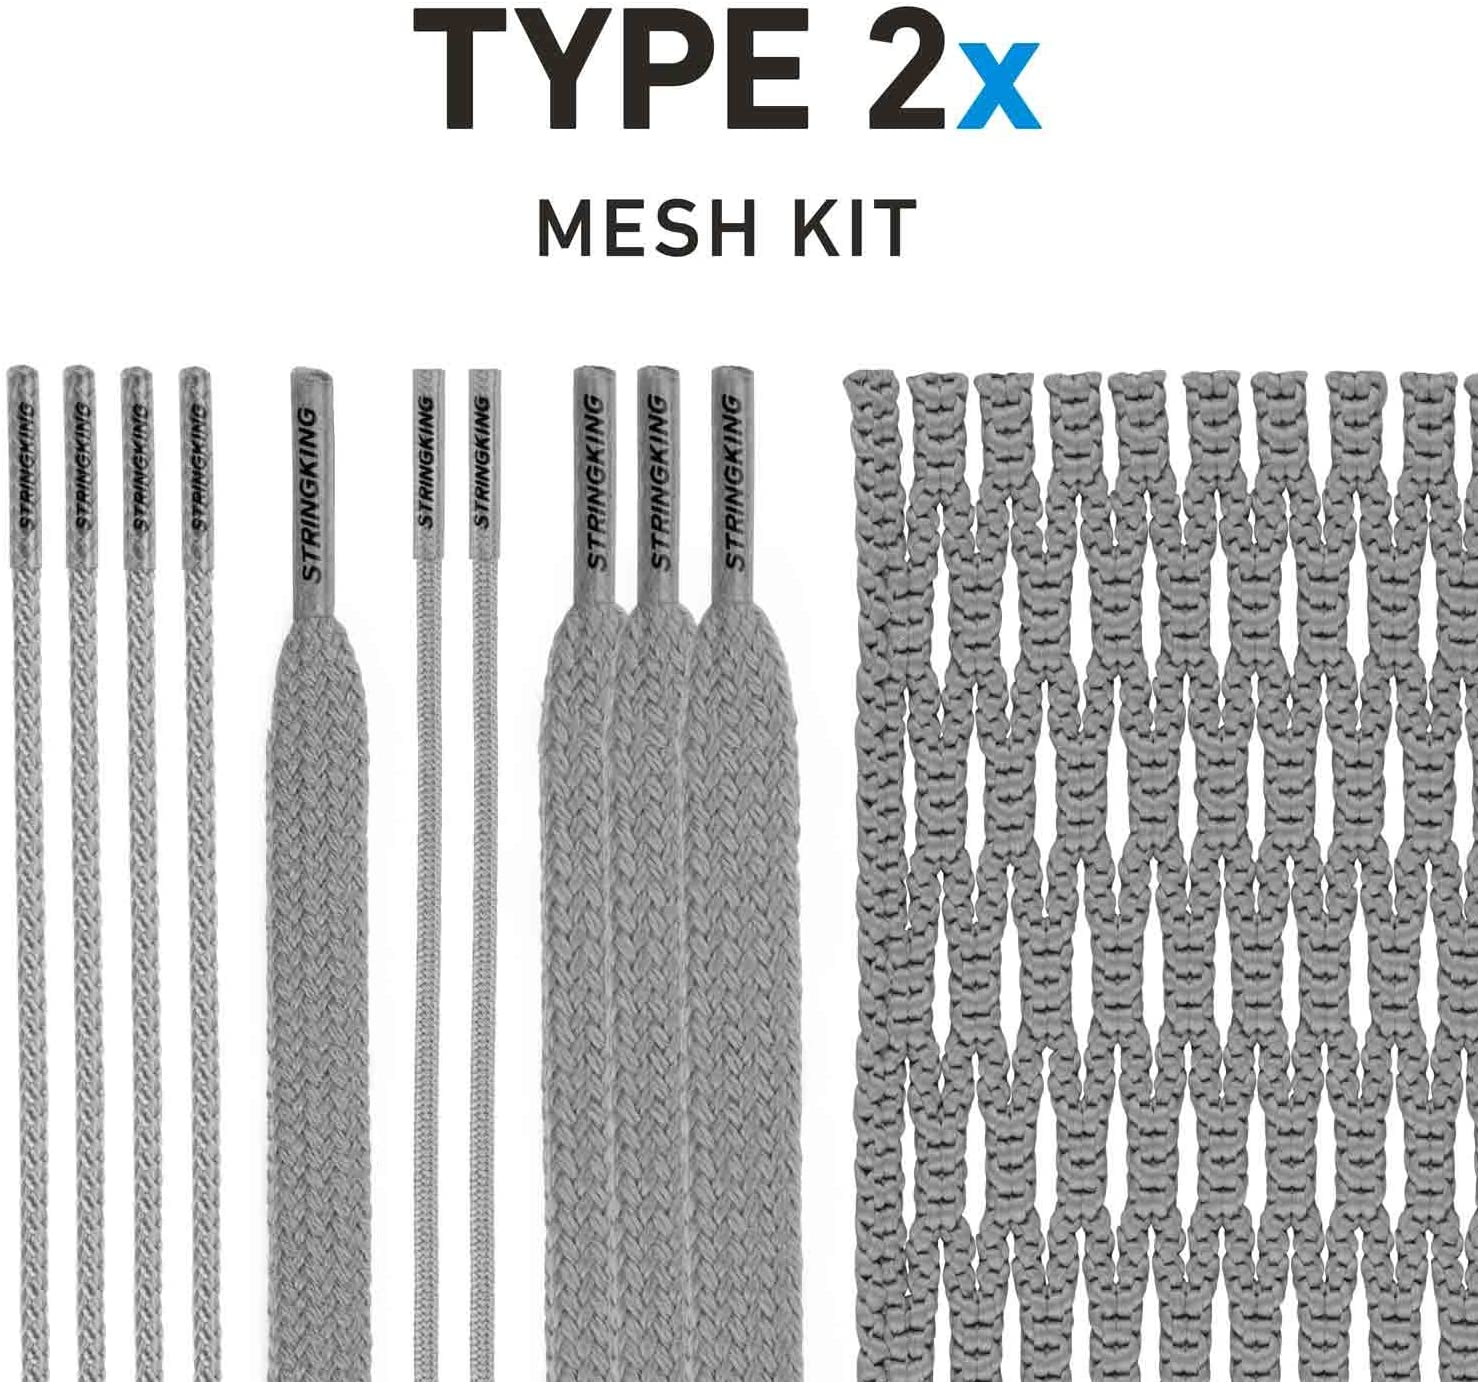 NEW White StringKing Type 2X Semi Hard Mesh Complete String Kit